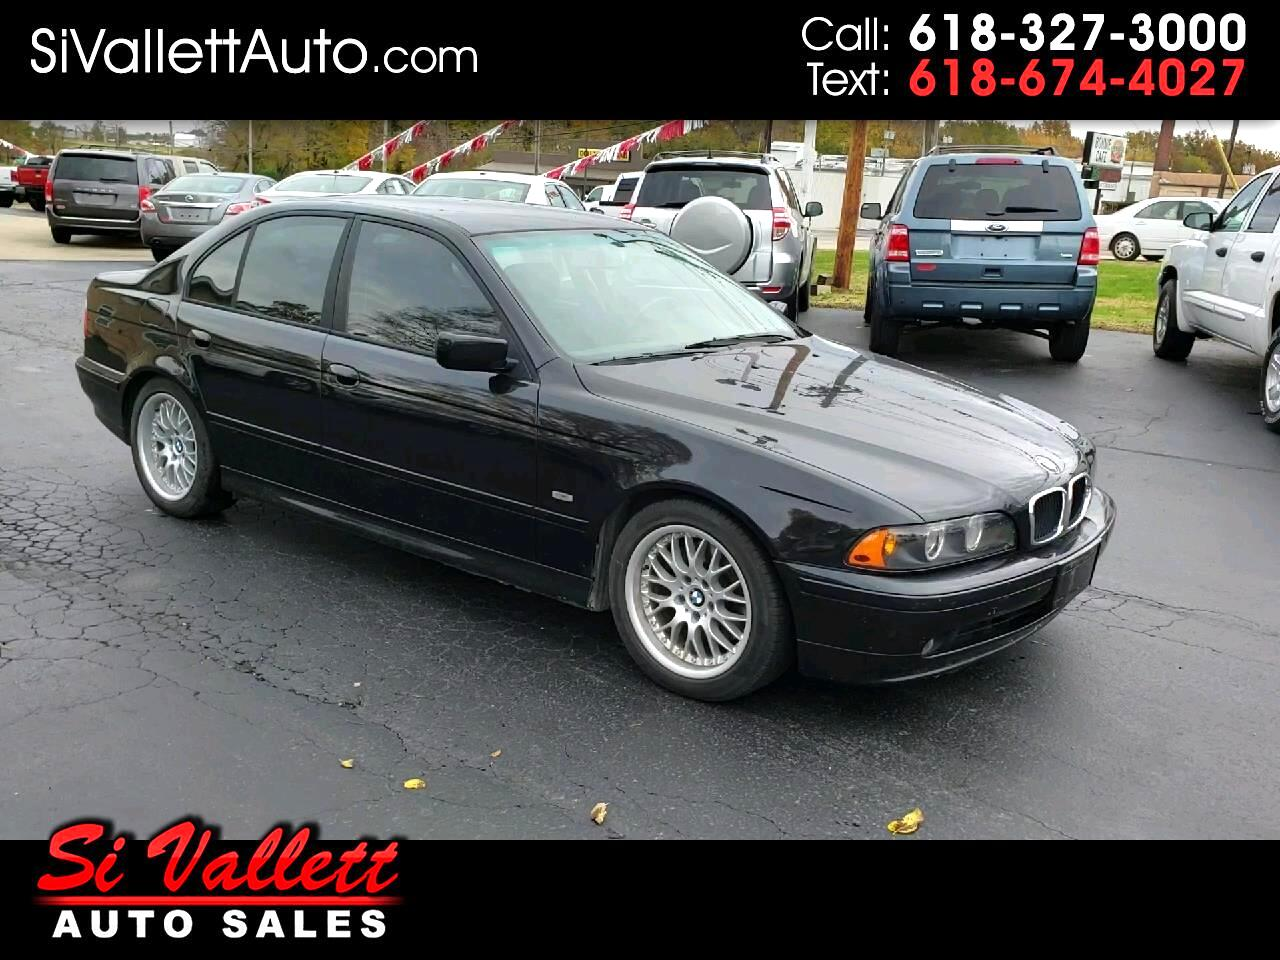 2001 BMW 5 Series 530i 4dr Sdn 5-Spd Manual